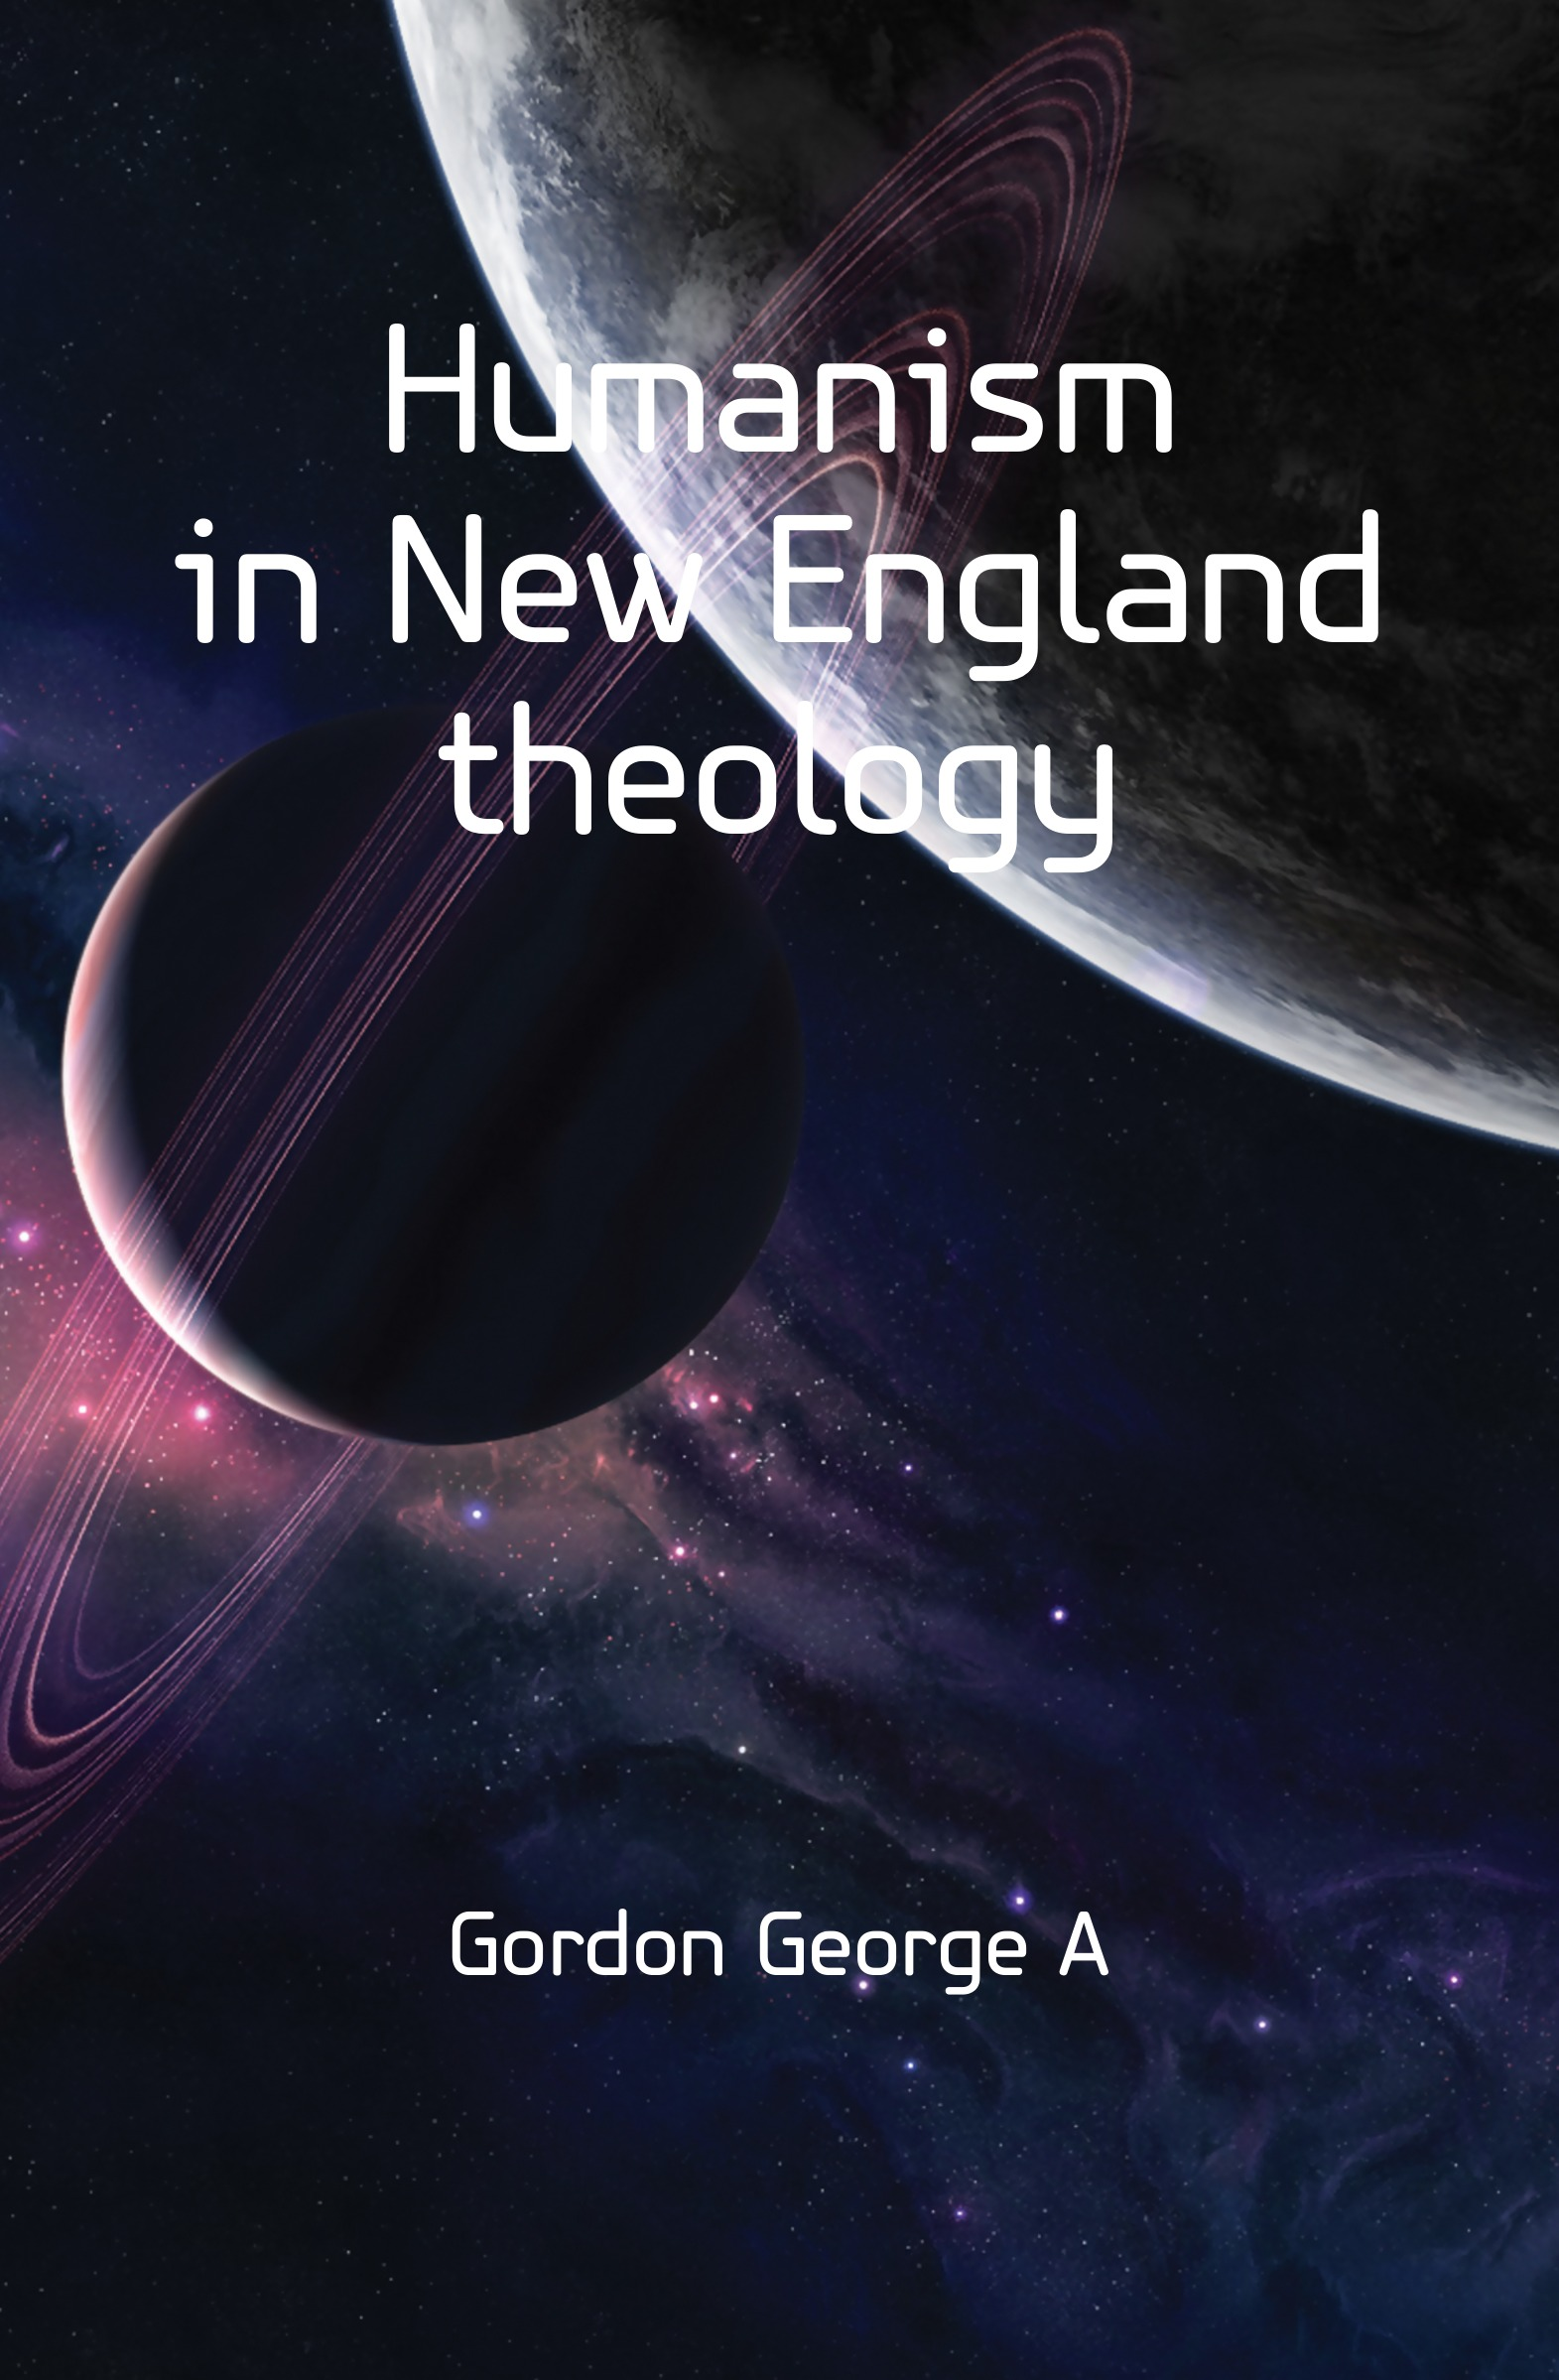 Gordon George A. Humanism in New England theology boardman george nye a history of new england theology